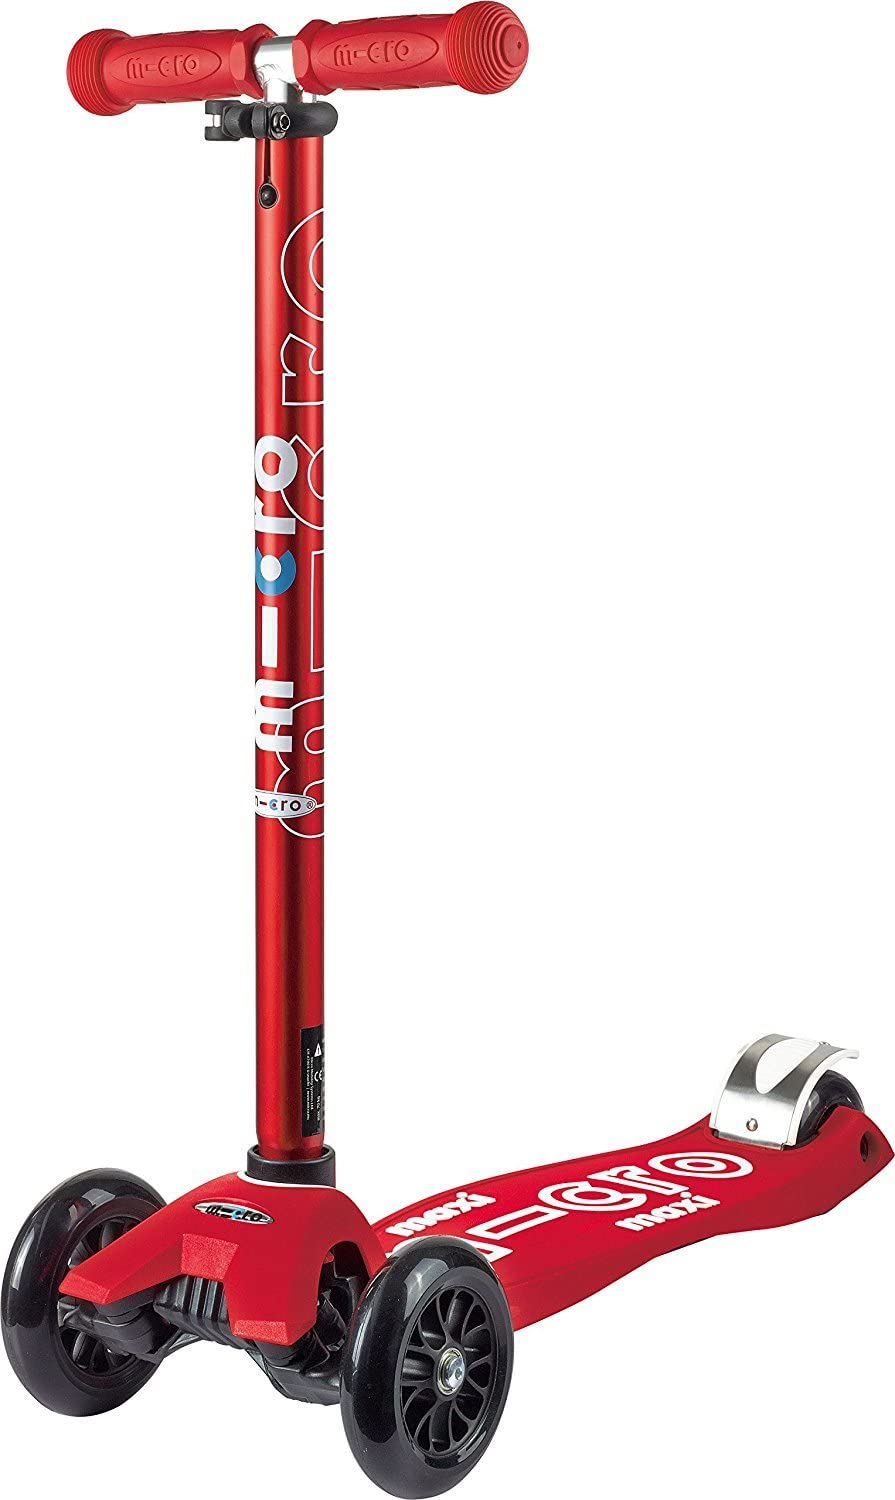 Micro Maxi Deluxe 3-Wheeled, Lean-to-Steer, Swiss-Designed Micro Scooter for Kids, Ages 5-12 - Red